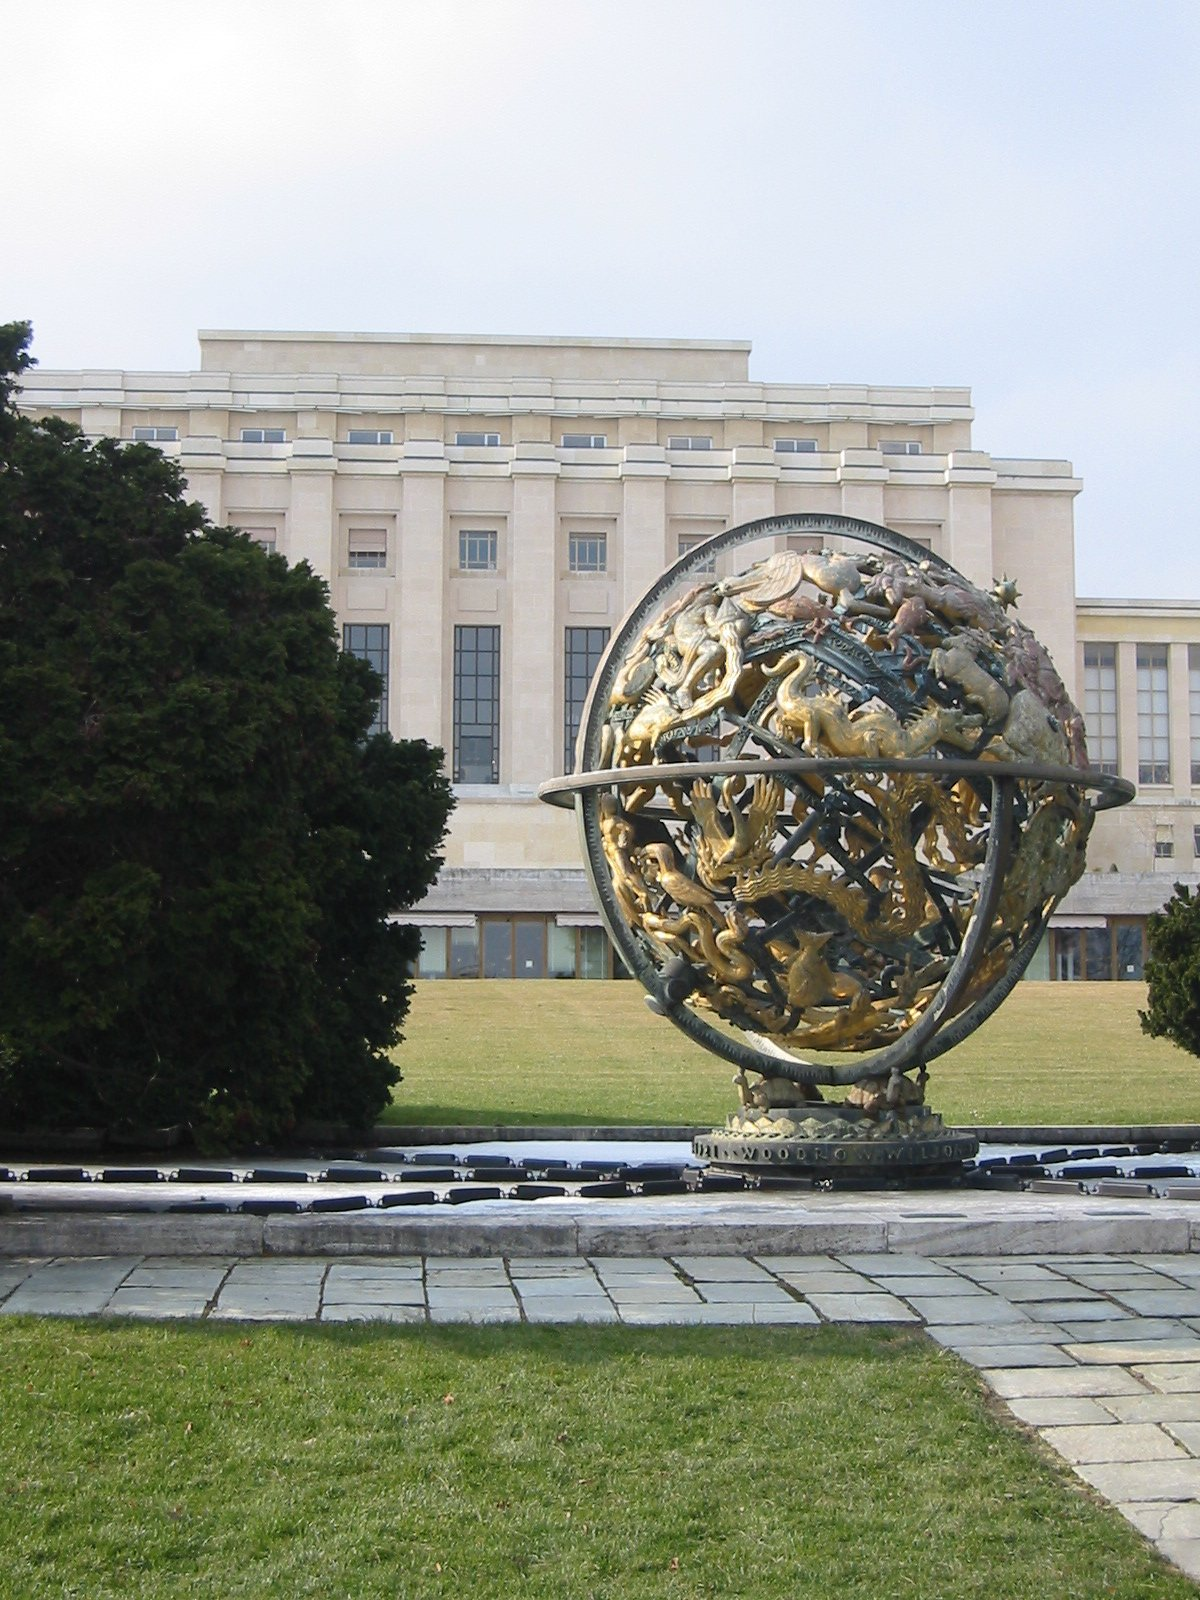 The Celestial Sphere in the garden of the Palais des Nations, Geneva. presented to the United Nations by the Woodrow Wilson Foundation. Photo taken on February 25, 2005